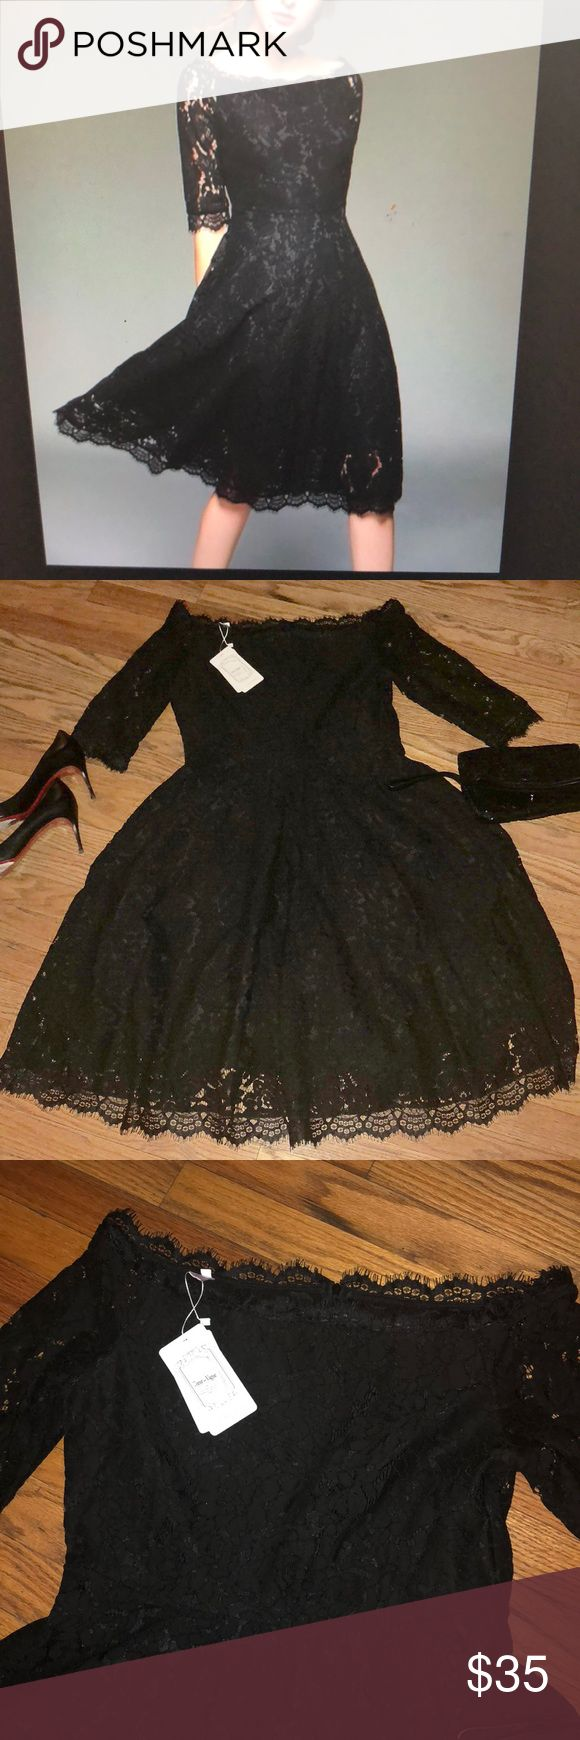 FIT n FLARE Black Lace Dress FIT n FLARE Black Lace Dress. US Size 8; Gorgeous Boat neck, 3/4 sleeves, Back zip, Fully lined Lace 👗 Dress! You are sure to turn heads in this Hot Number!! Absolutely Gorgeous! Christian Louboutin Dresses